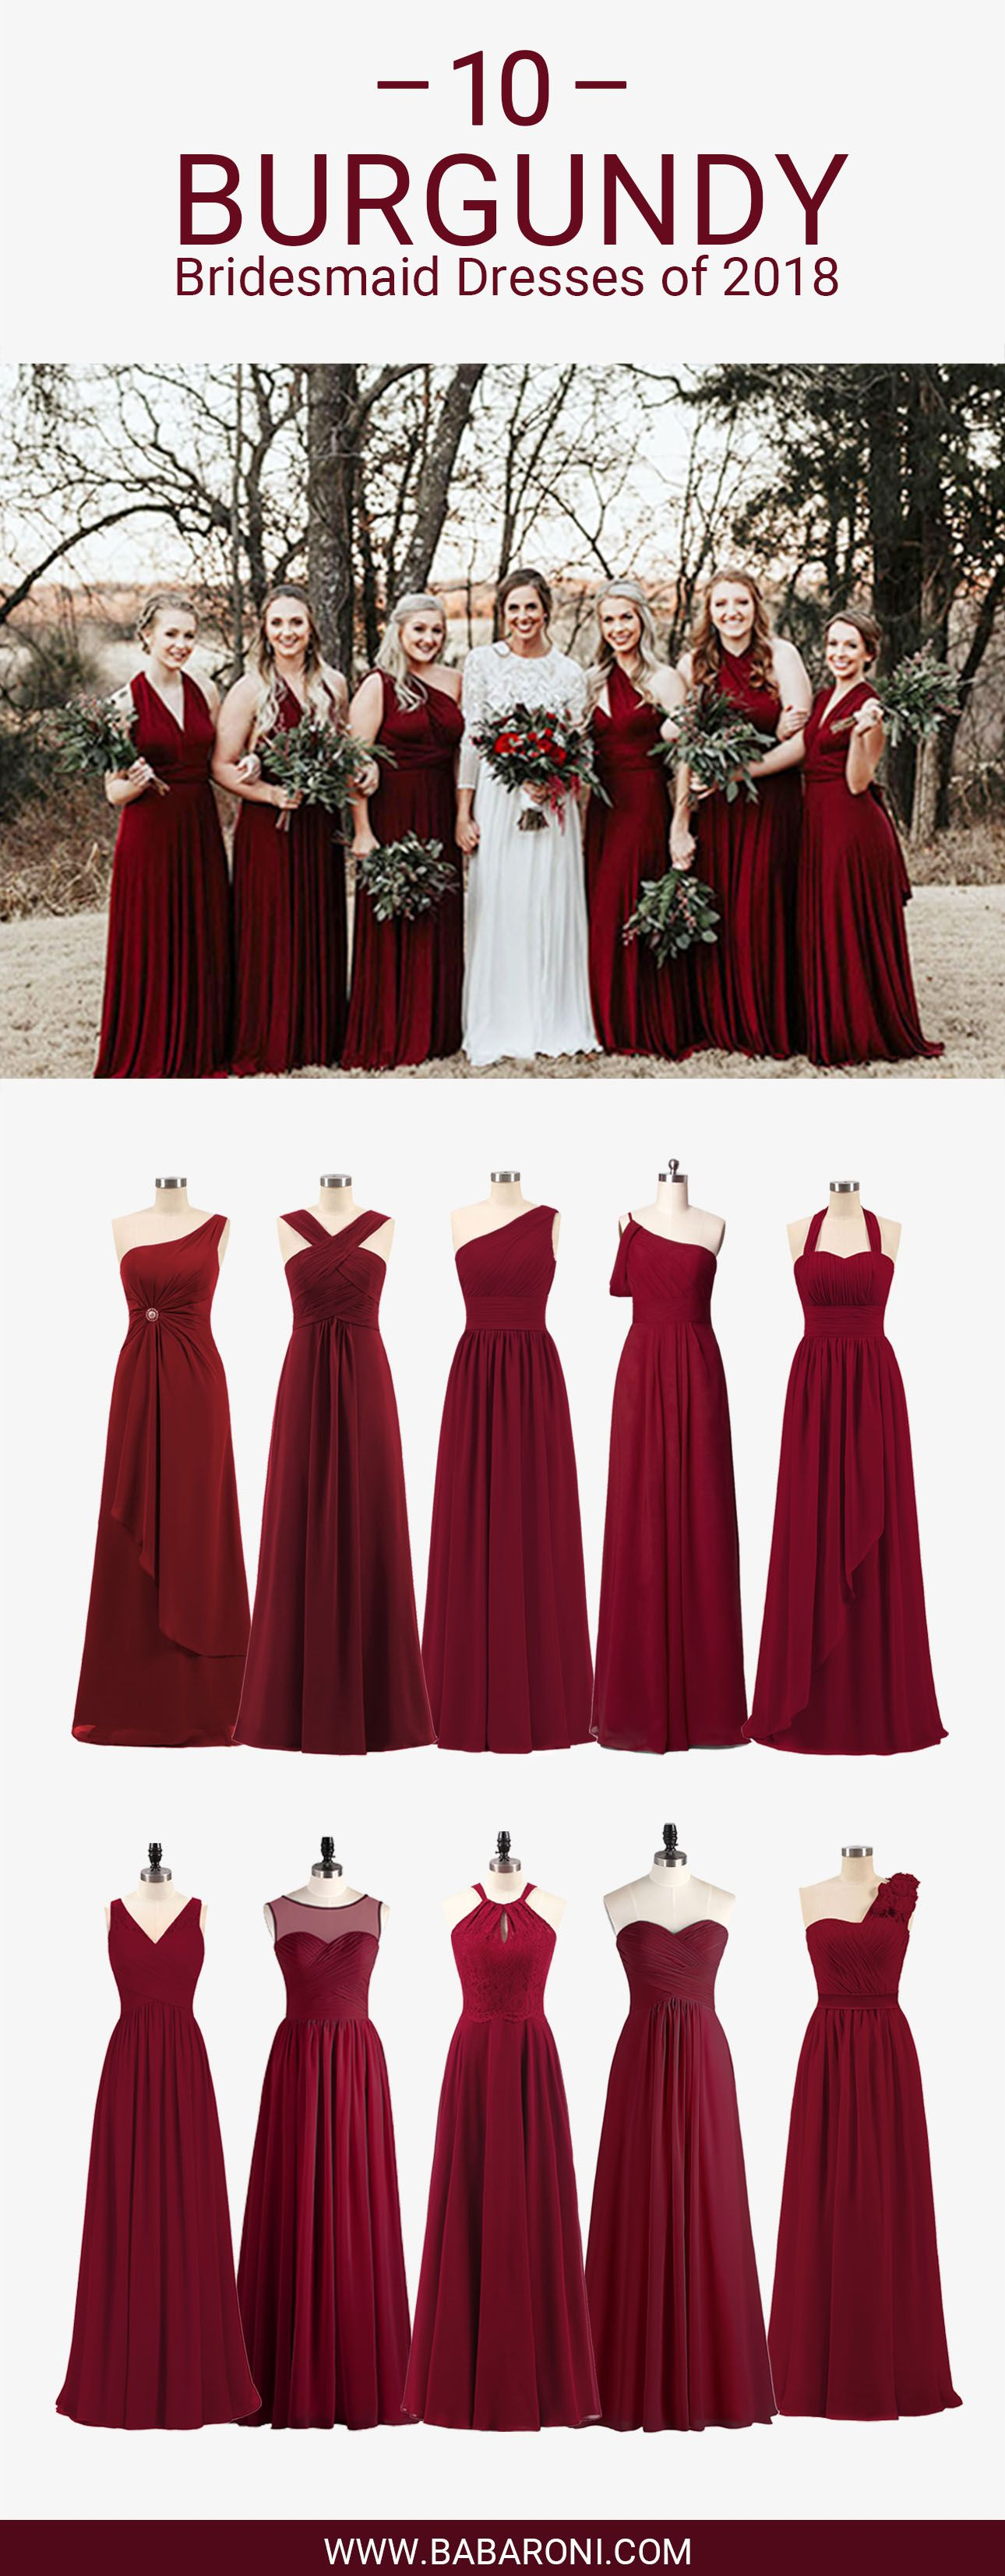 Bridesmaid dresses in wedding ideas pinterest wedding